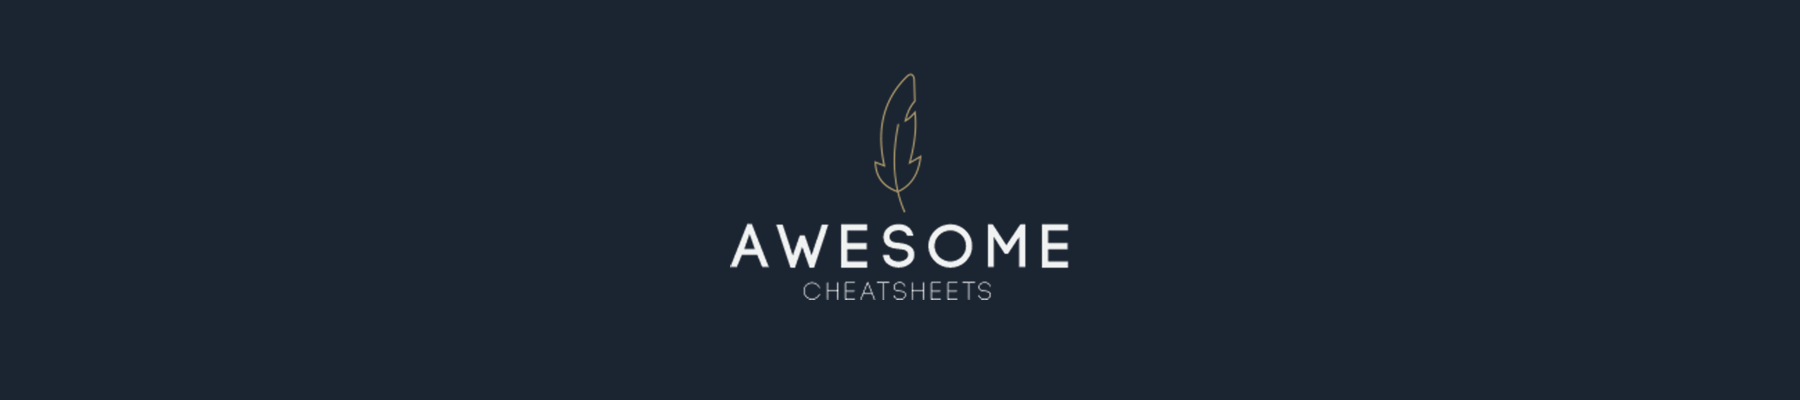 AWESOME CHEATSHEETS LOGO